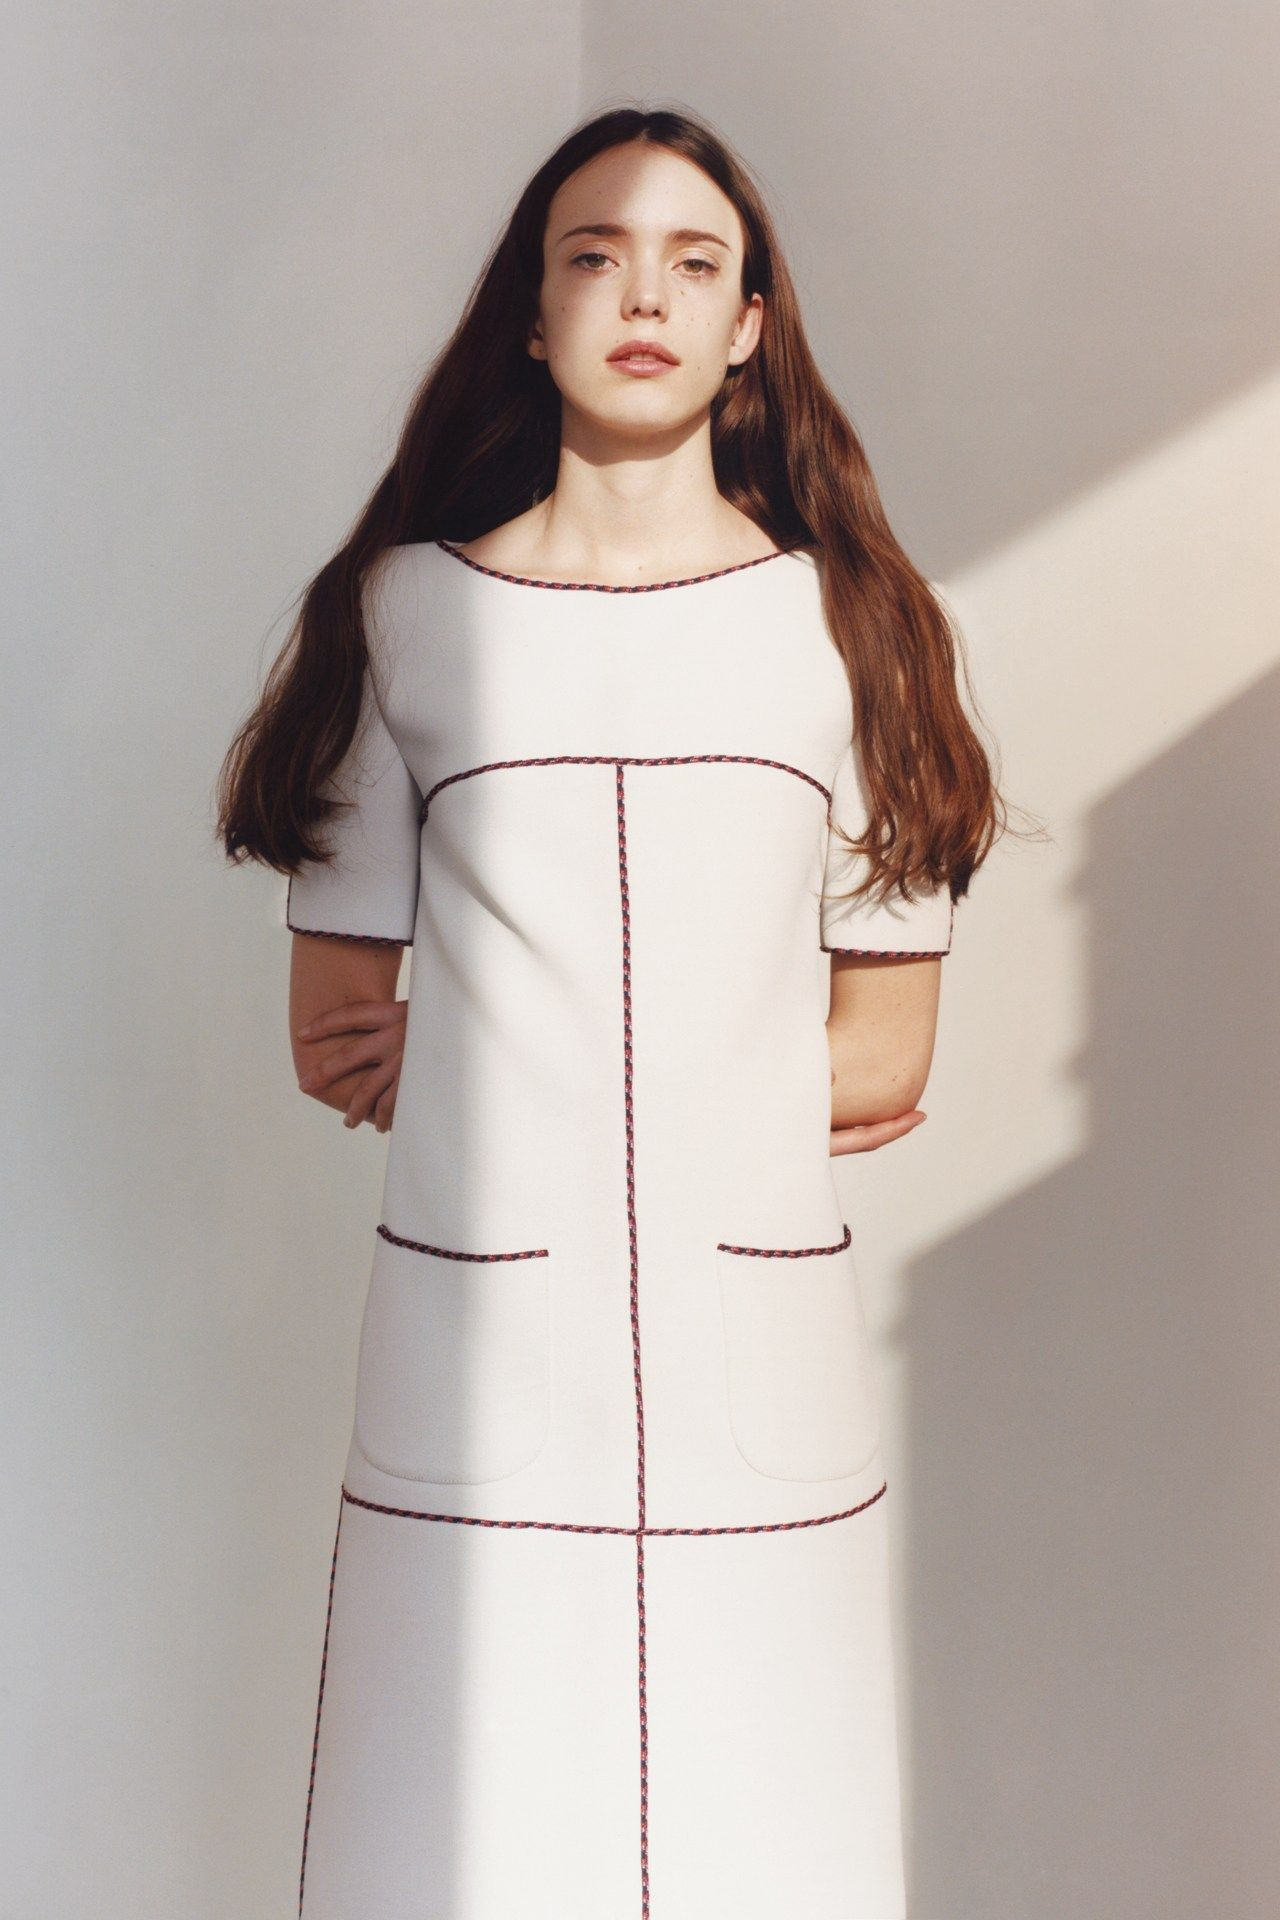 The nymph stacy martin in vogue stacy martin vogue uk and nude color